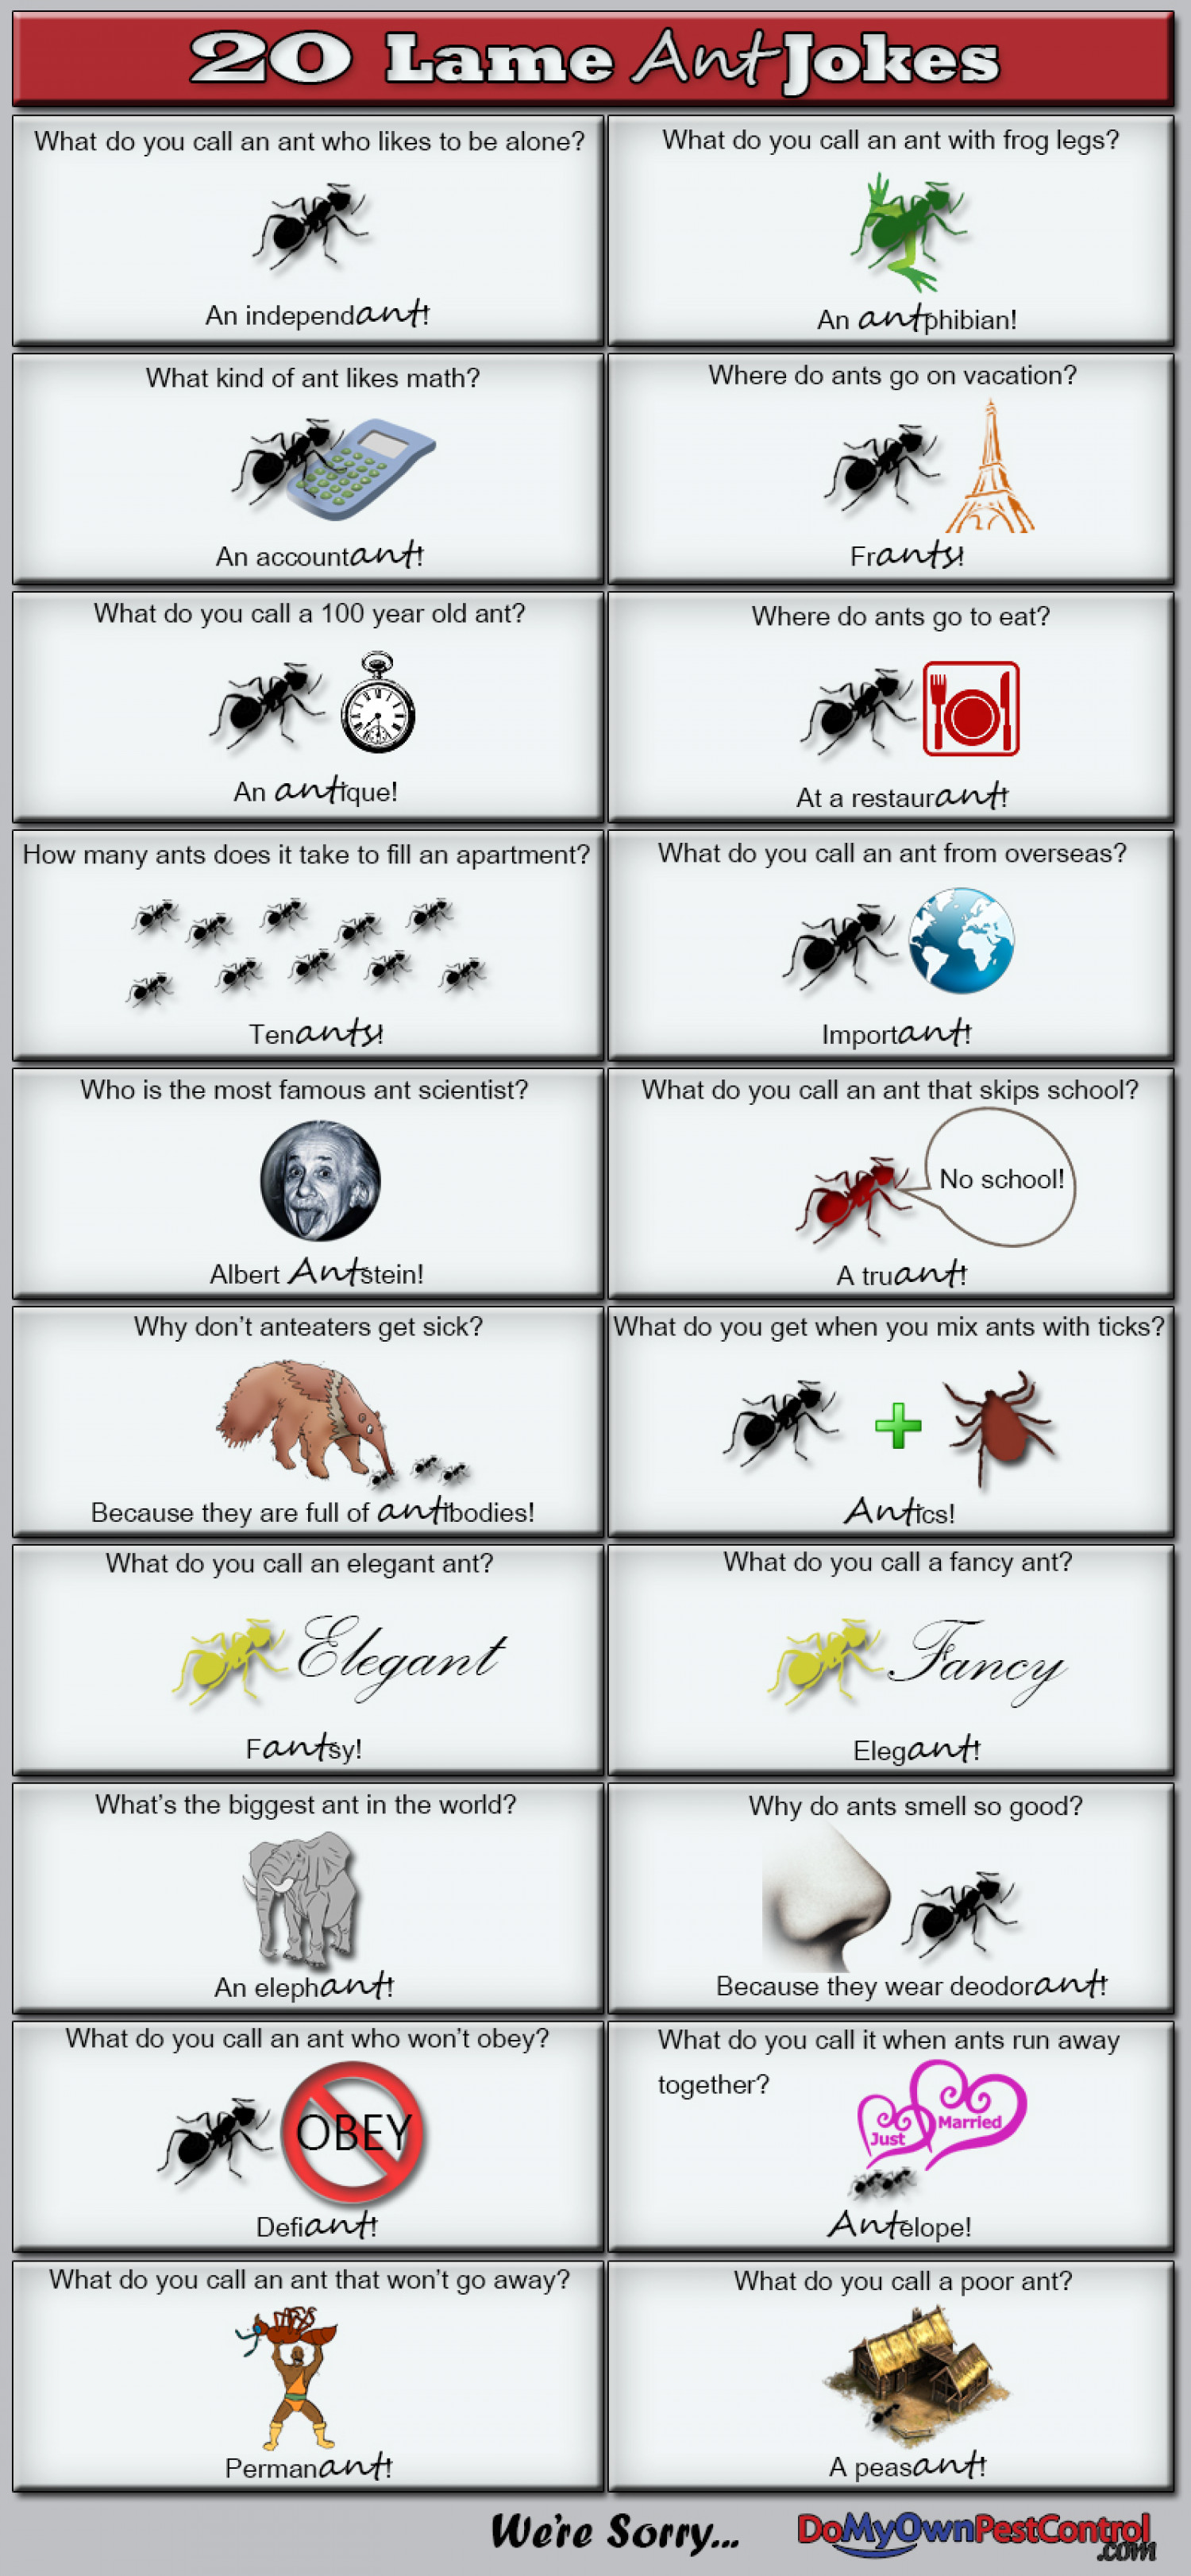 20 Lame Ant Jokes Infographic